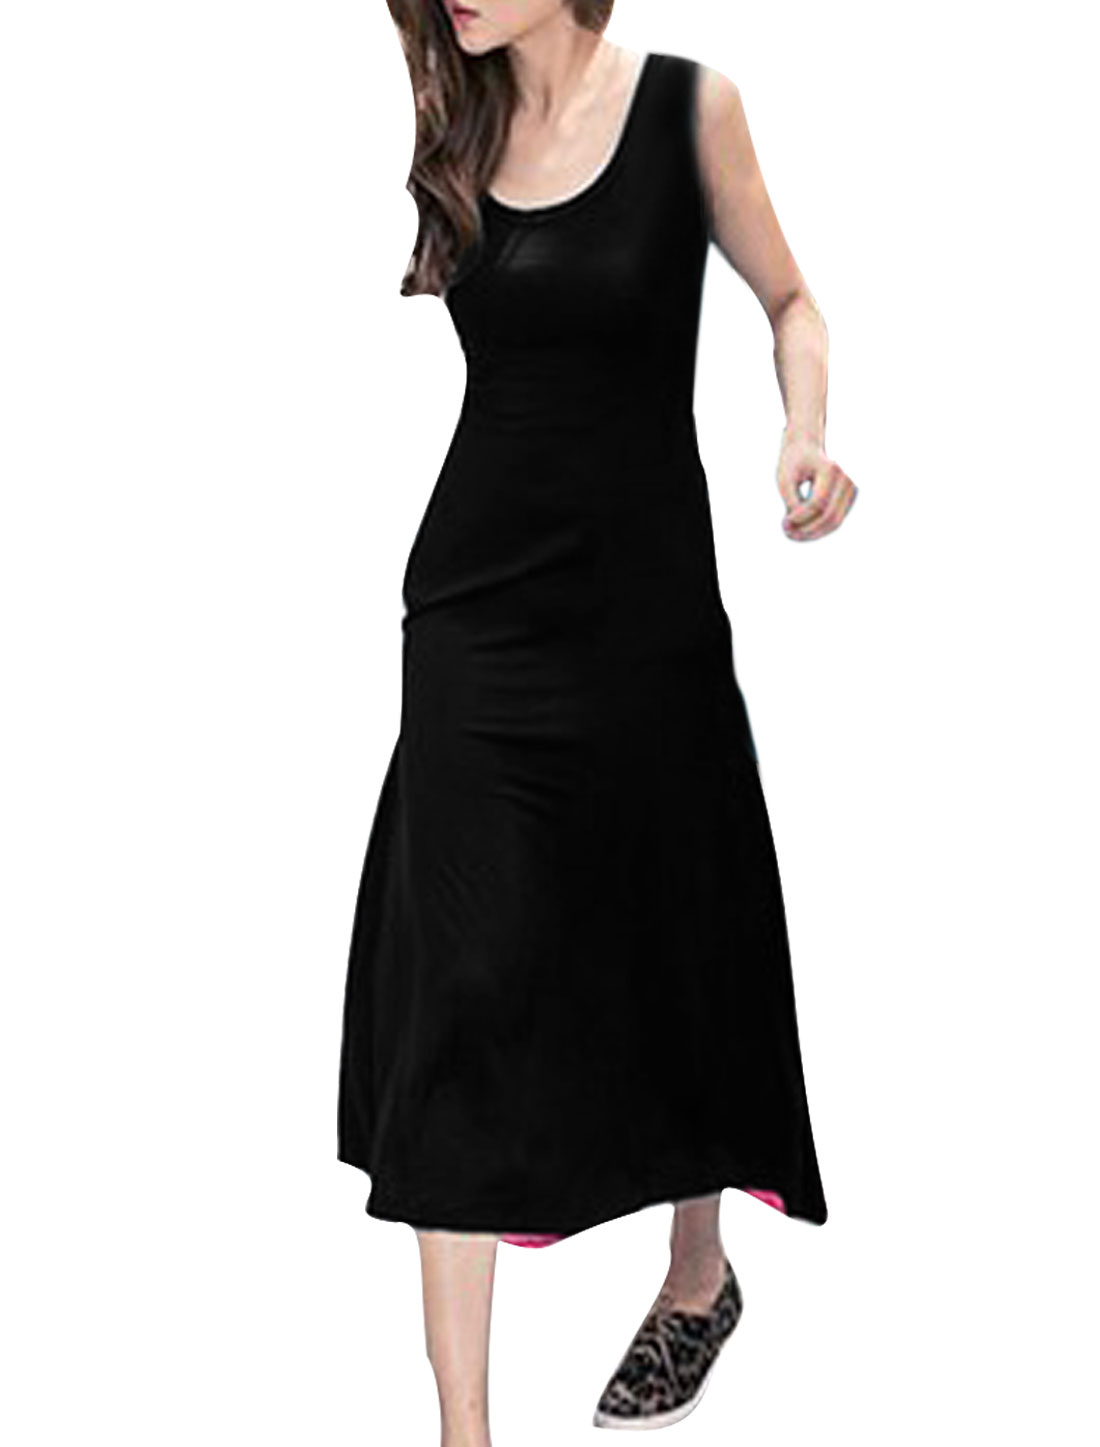 Women Black Fuchsia XS Sleeveless Design Round Neck Panel Two Tone Dress